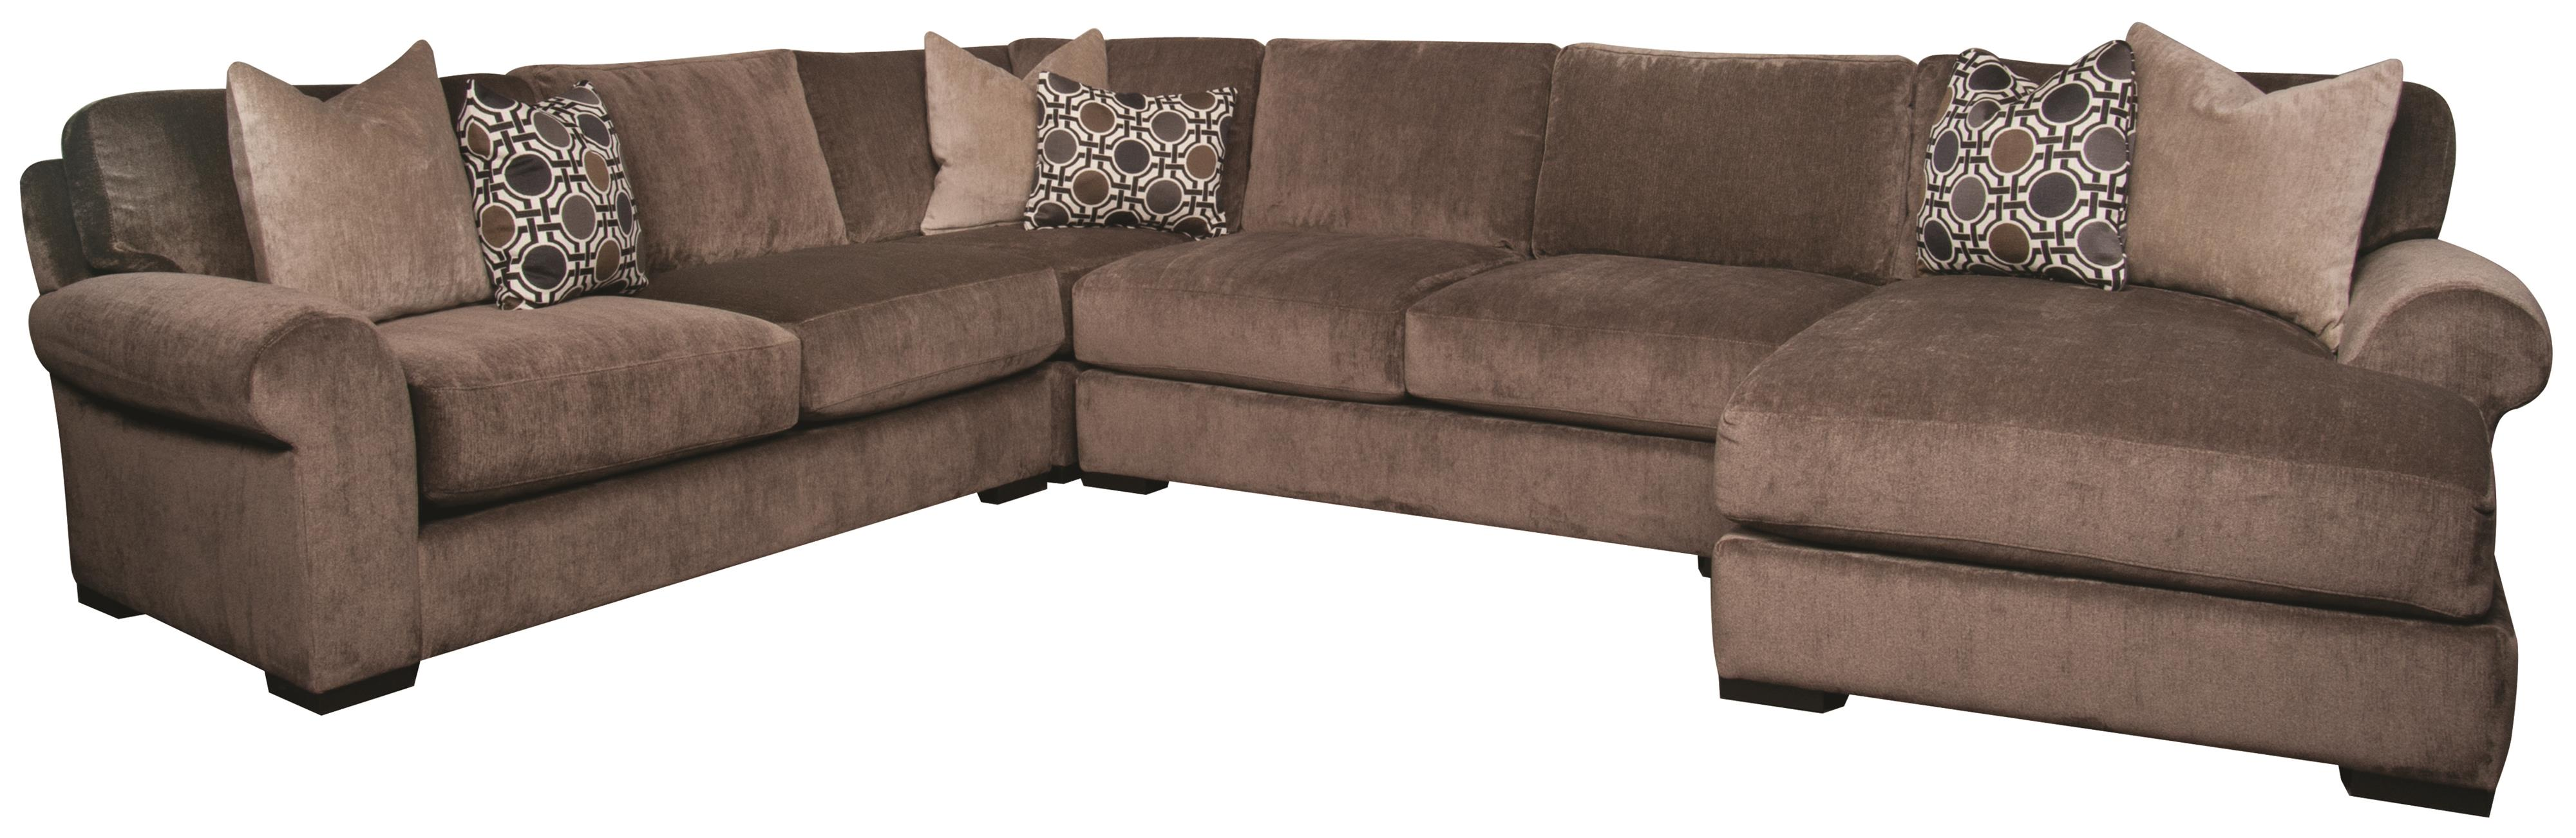 Karis 4 Piece Sectional Morris Home Sofa Sectional